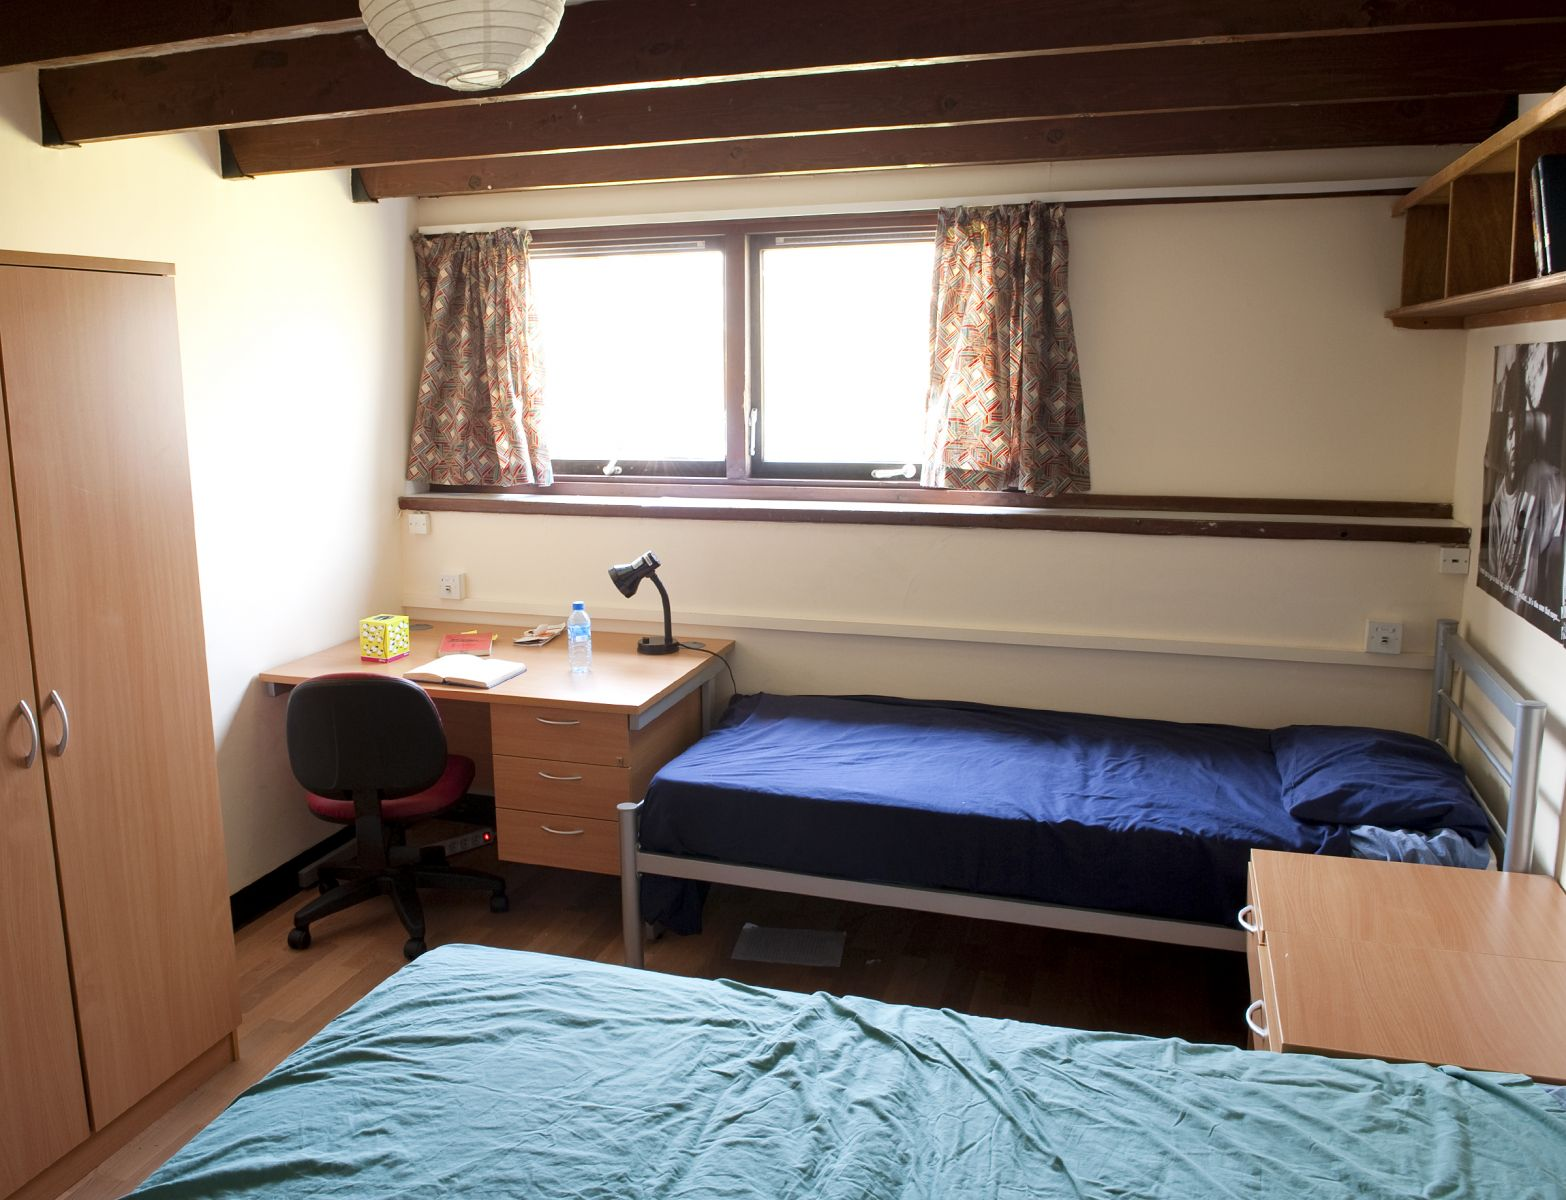 Photo Of A Budget Shared Room In East Slope